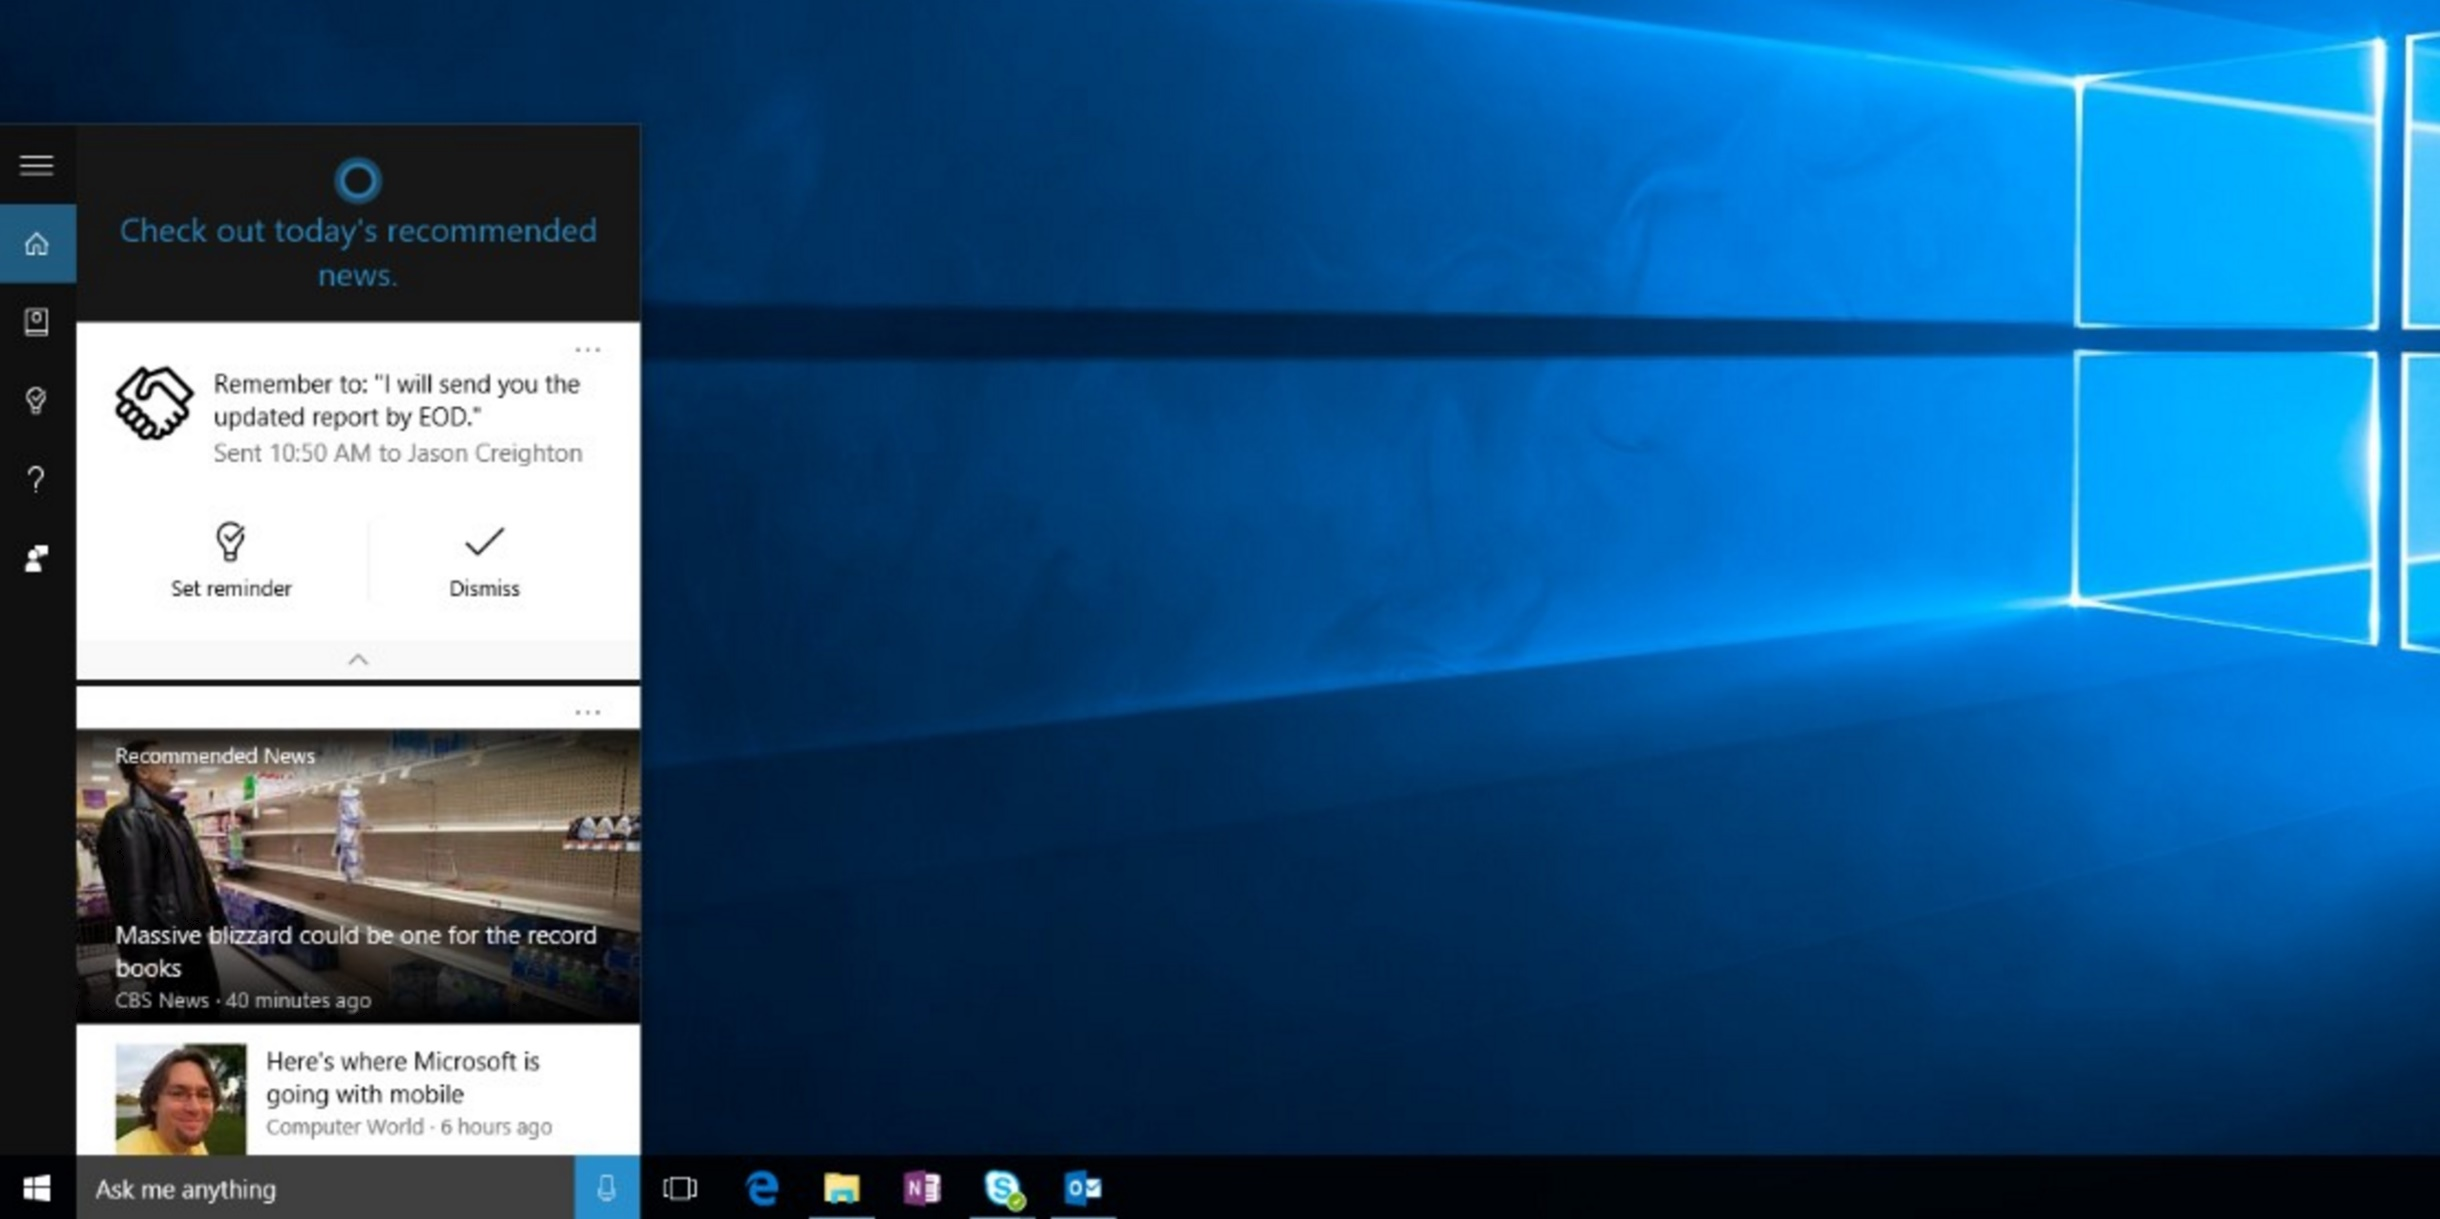 Cortana's newest feature will make you slightly less of an unreliable flake